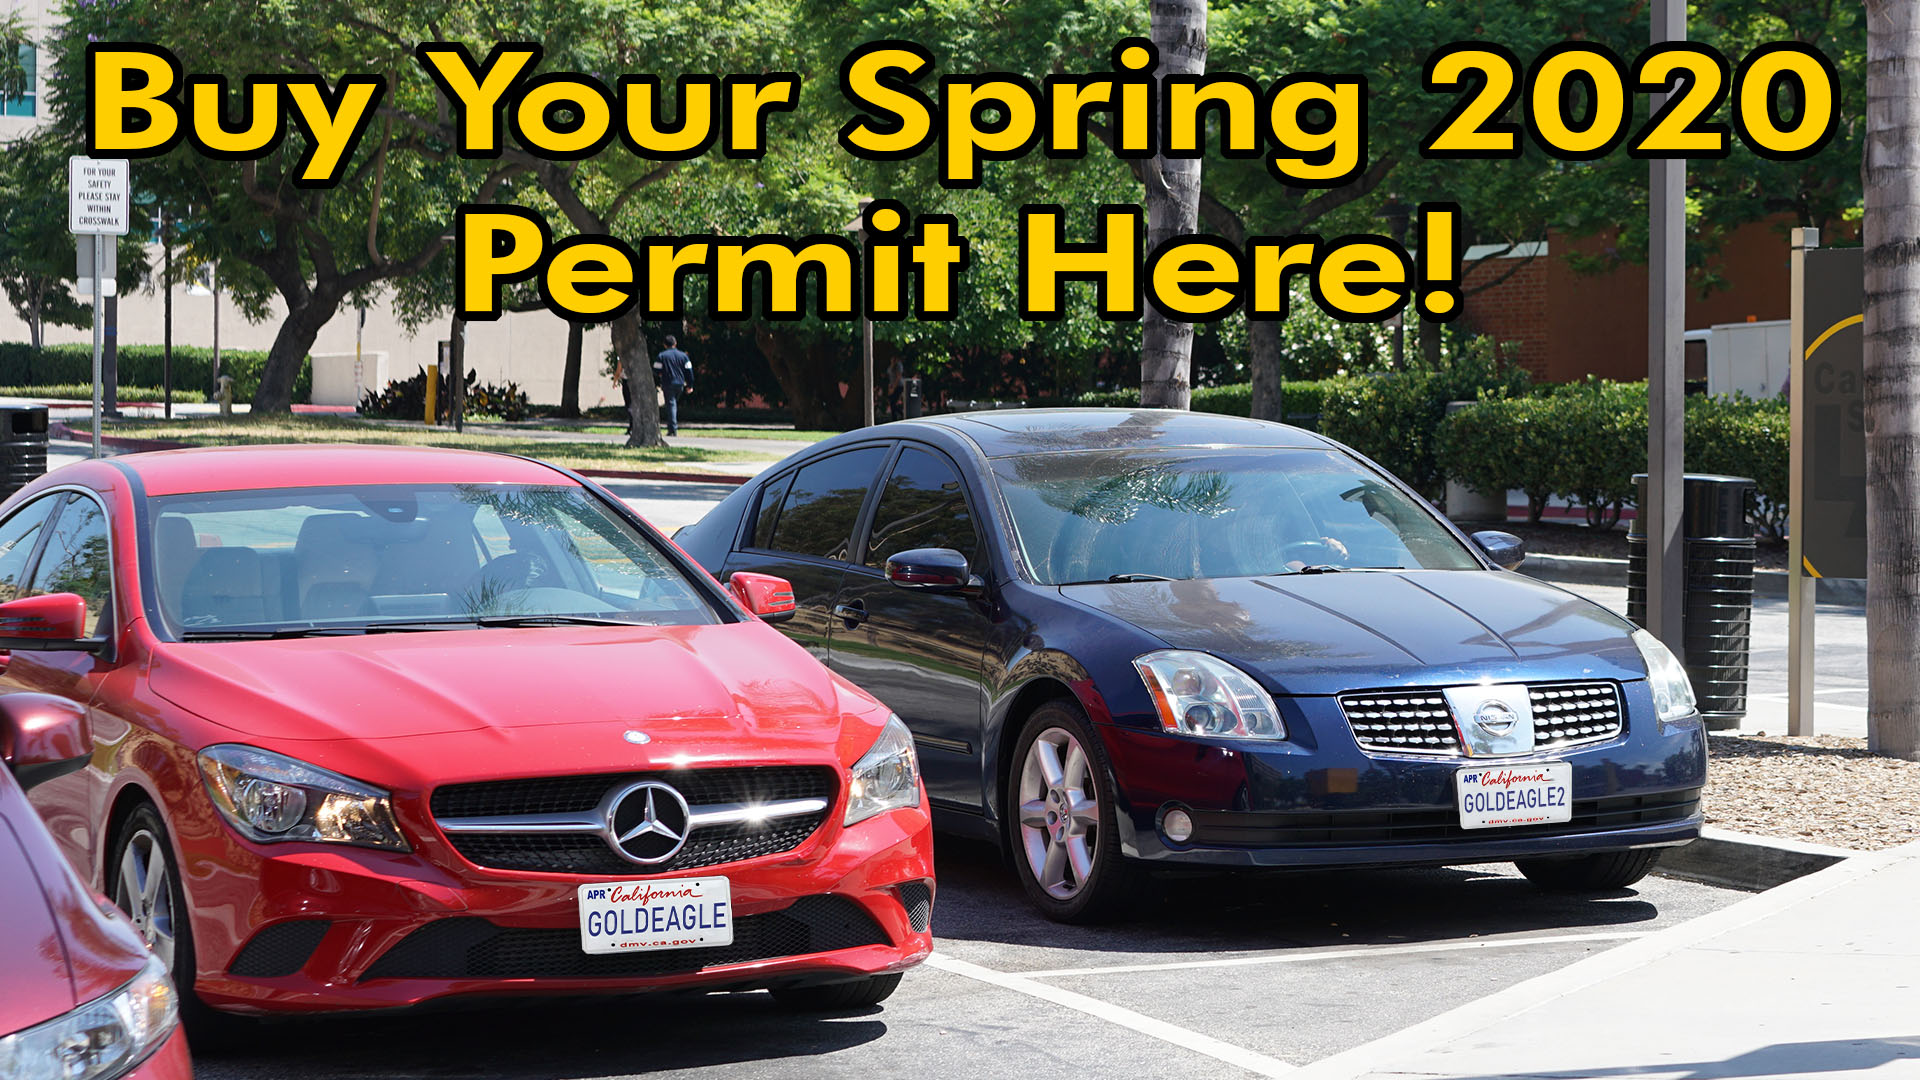 Buy A Spring 2020 Permit Here!